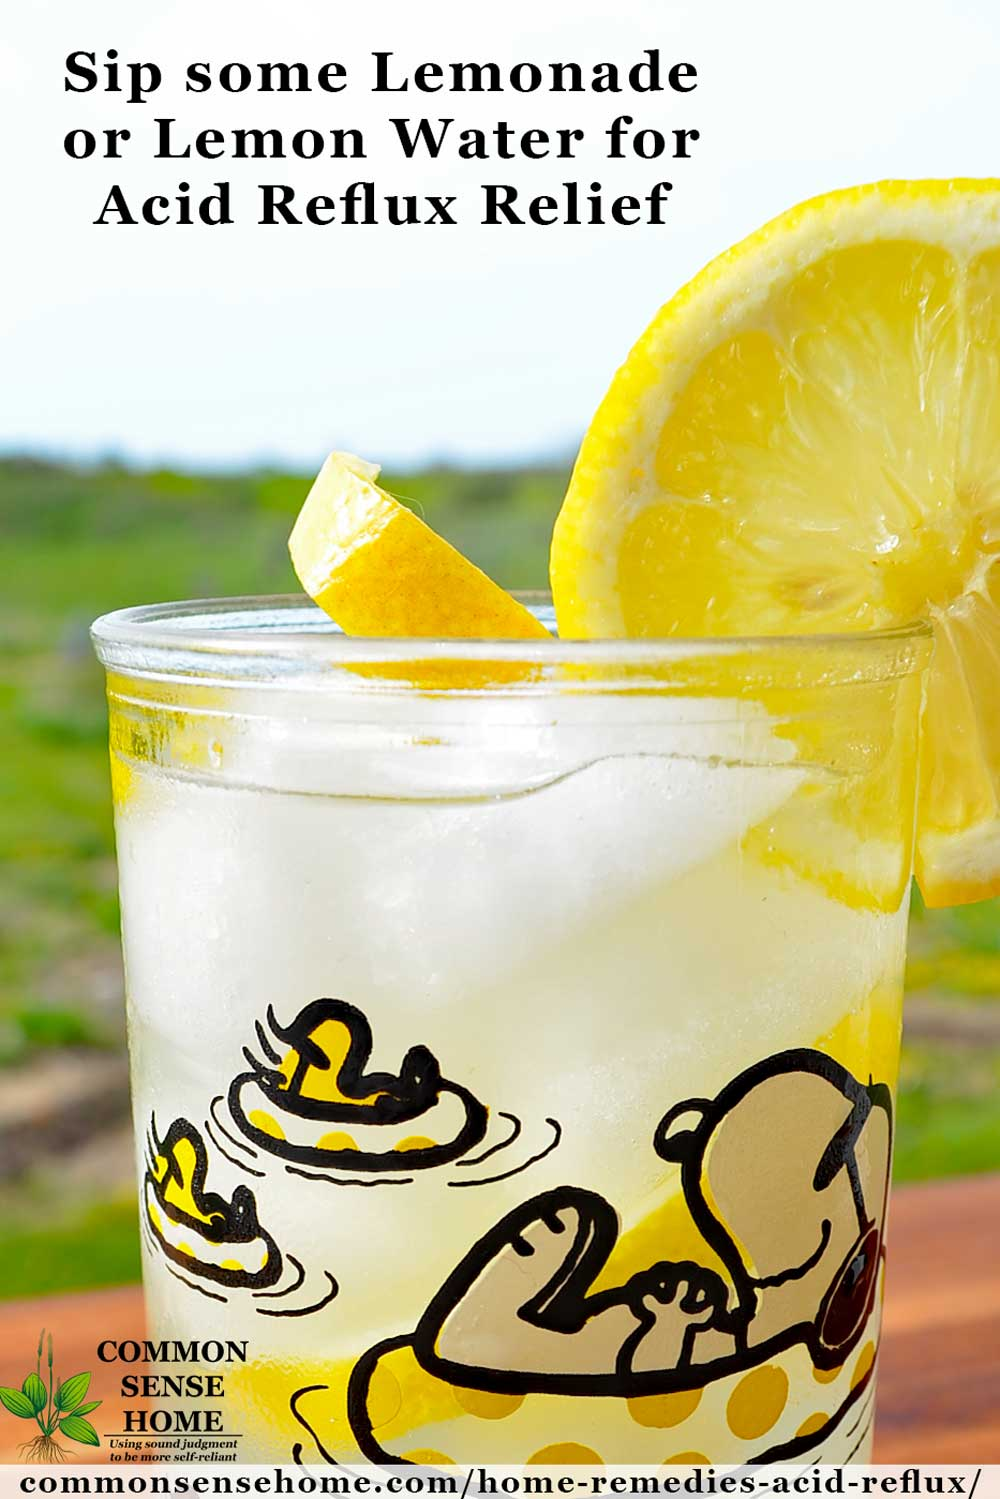 Glass of lemonade for acid reflux treatment